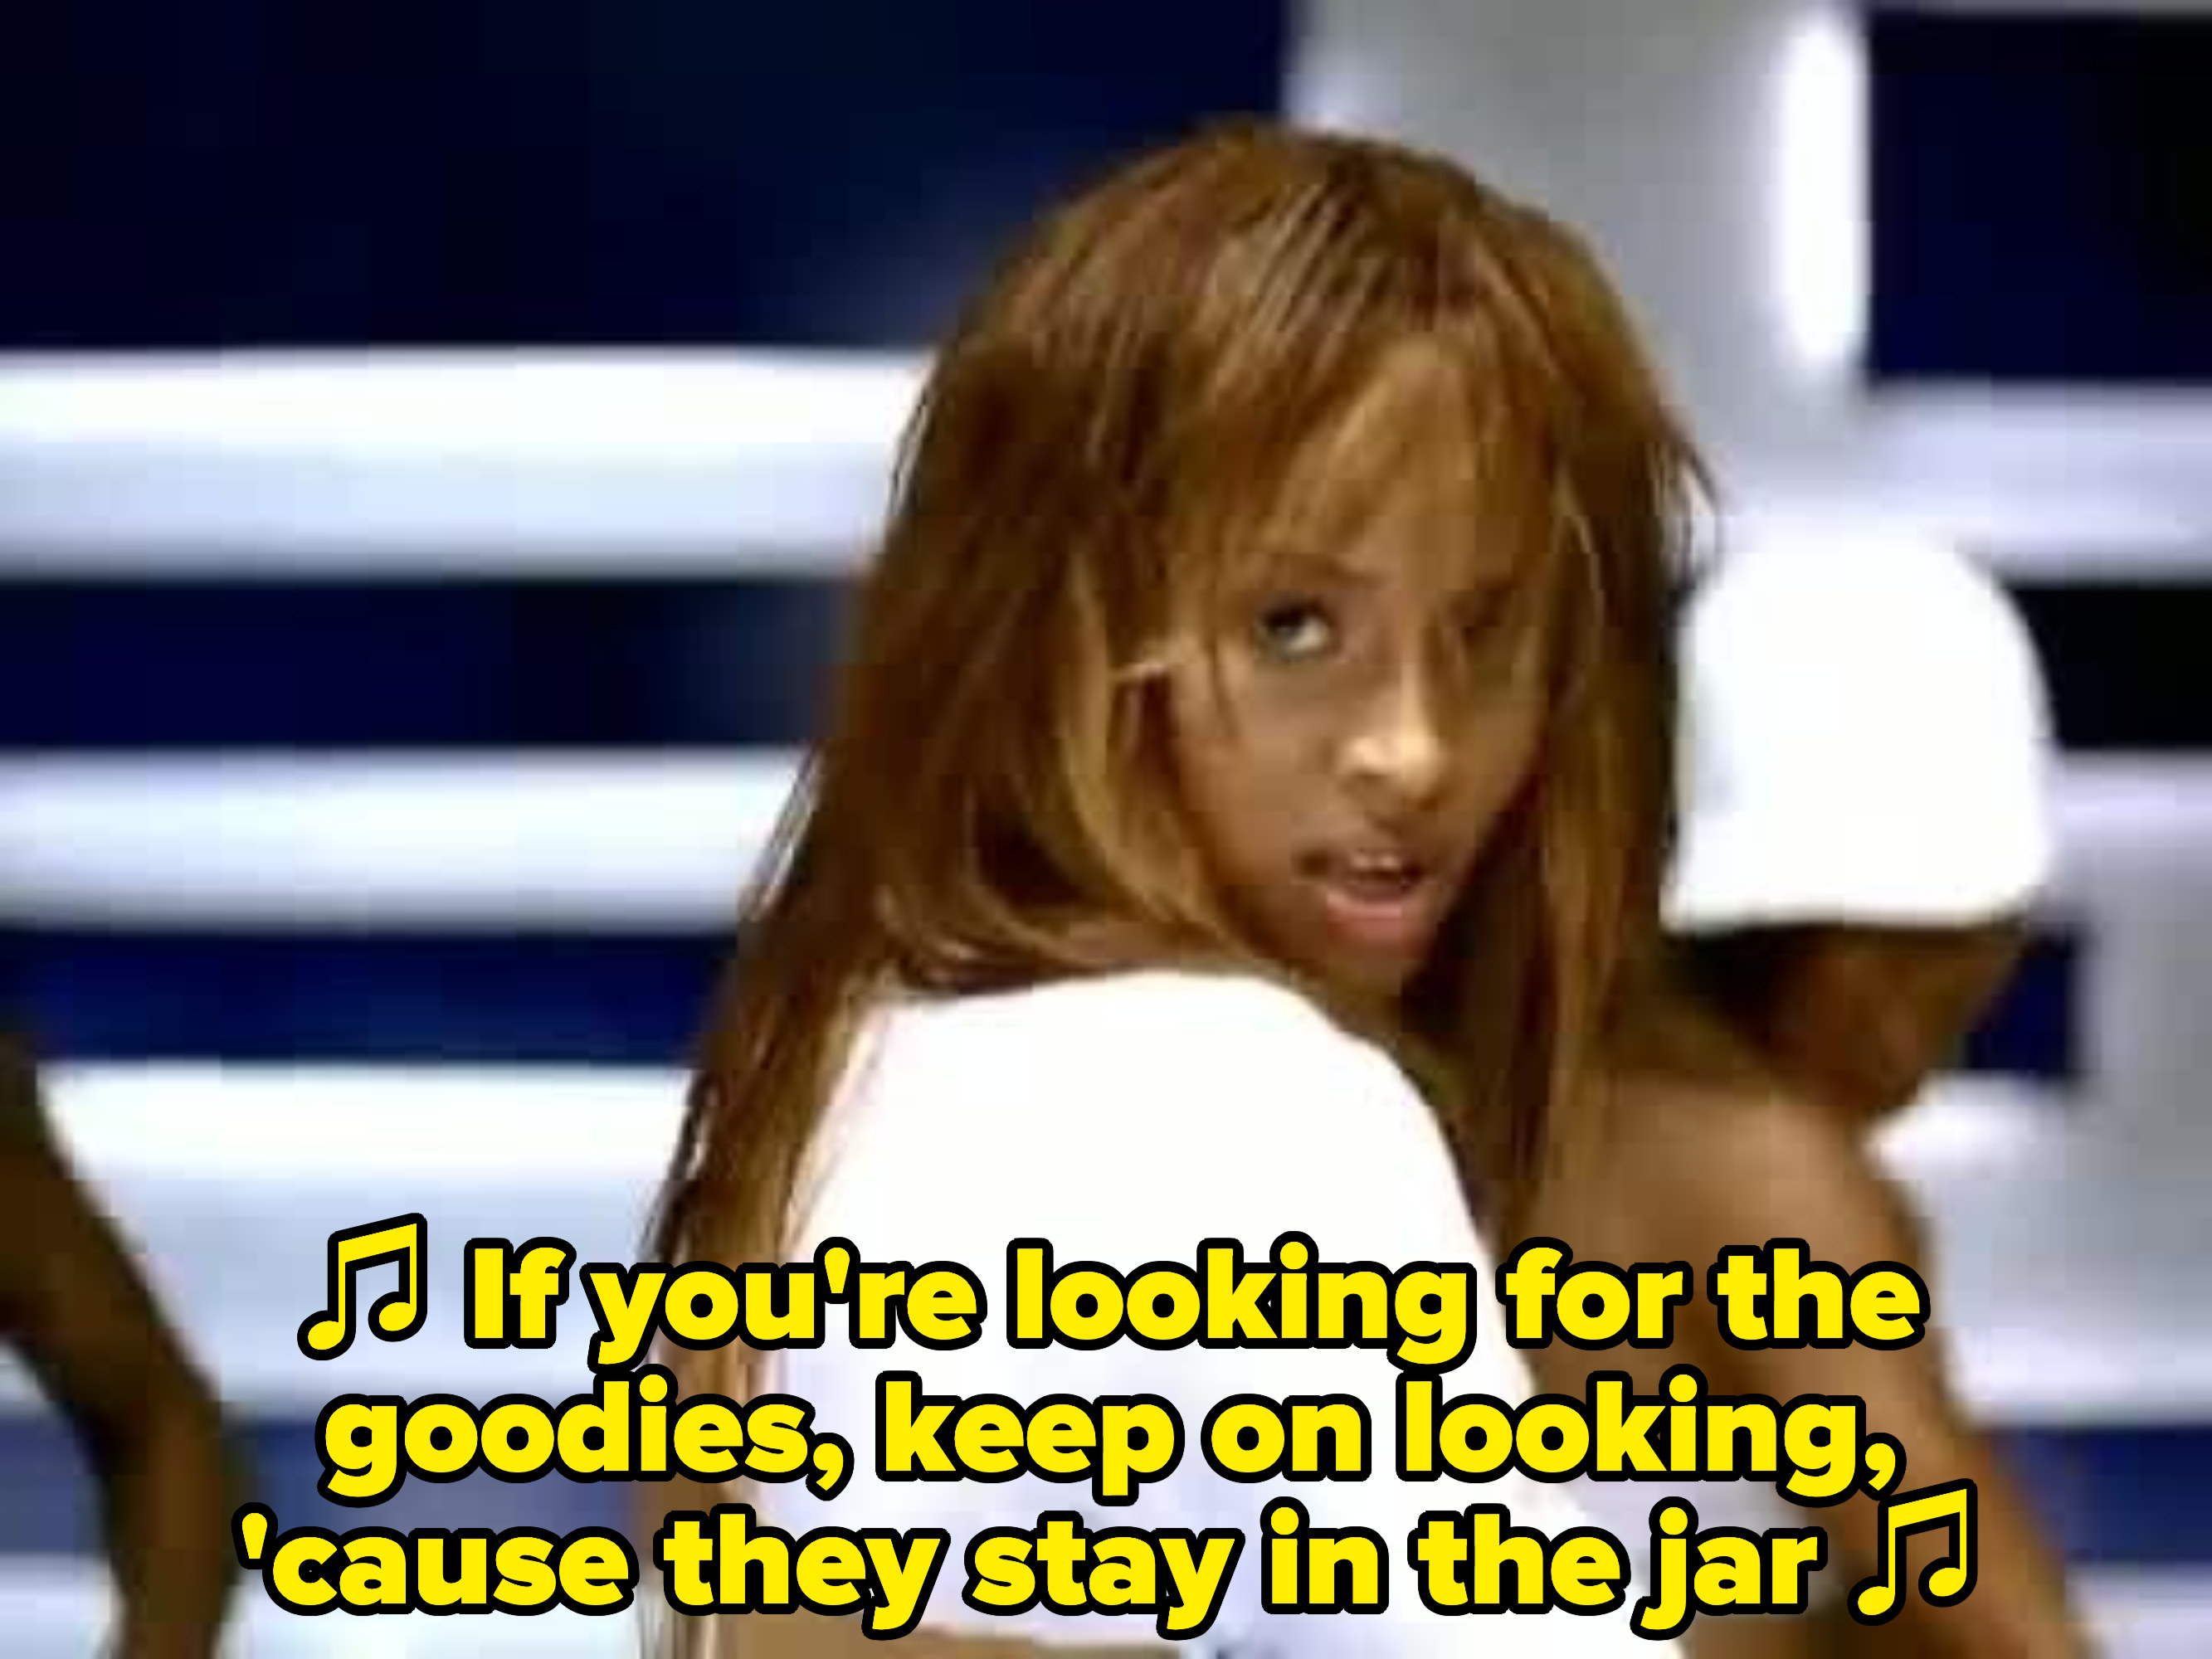 """Ciara singing: """"If you're looking for the goodies, keep on looking, 'cause they stay in the jar"""""""